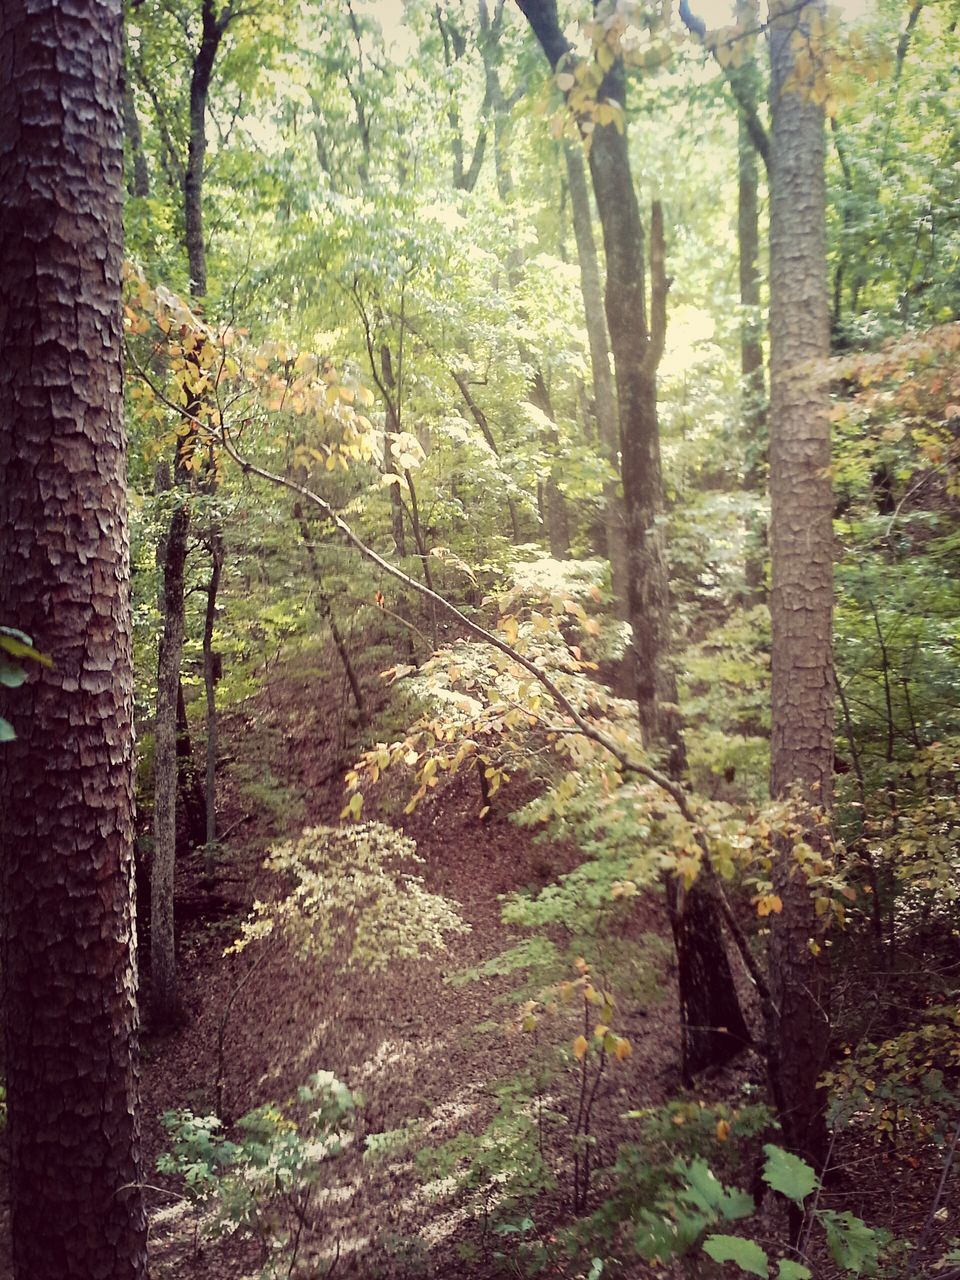 forest, nature, tree, day, outdoors, tree trunk, no people, tranquility, beauty in nature, scenics, plant